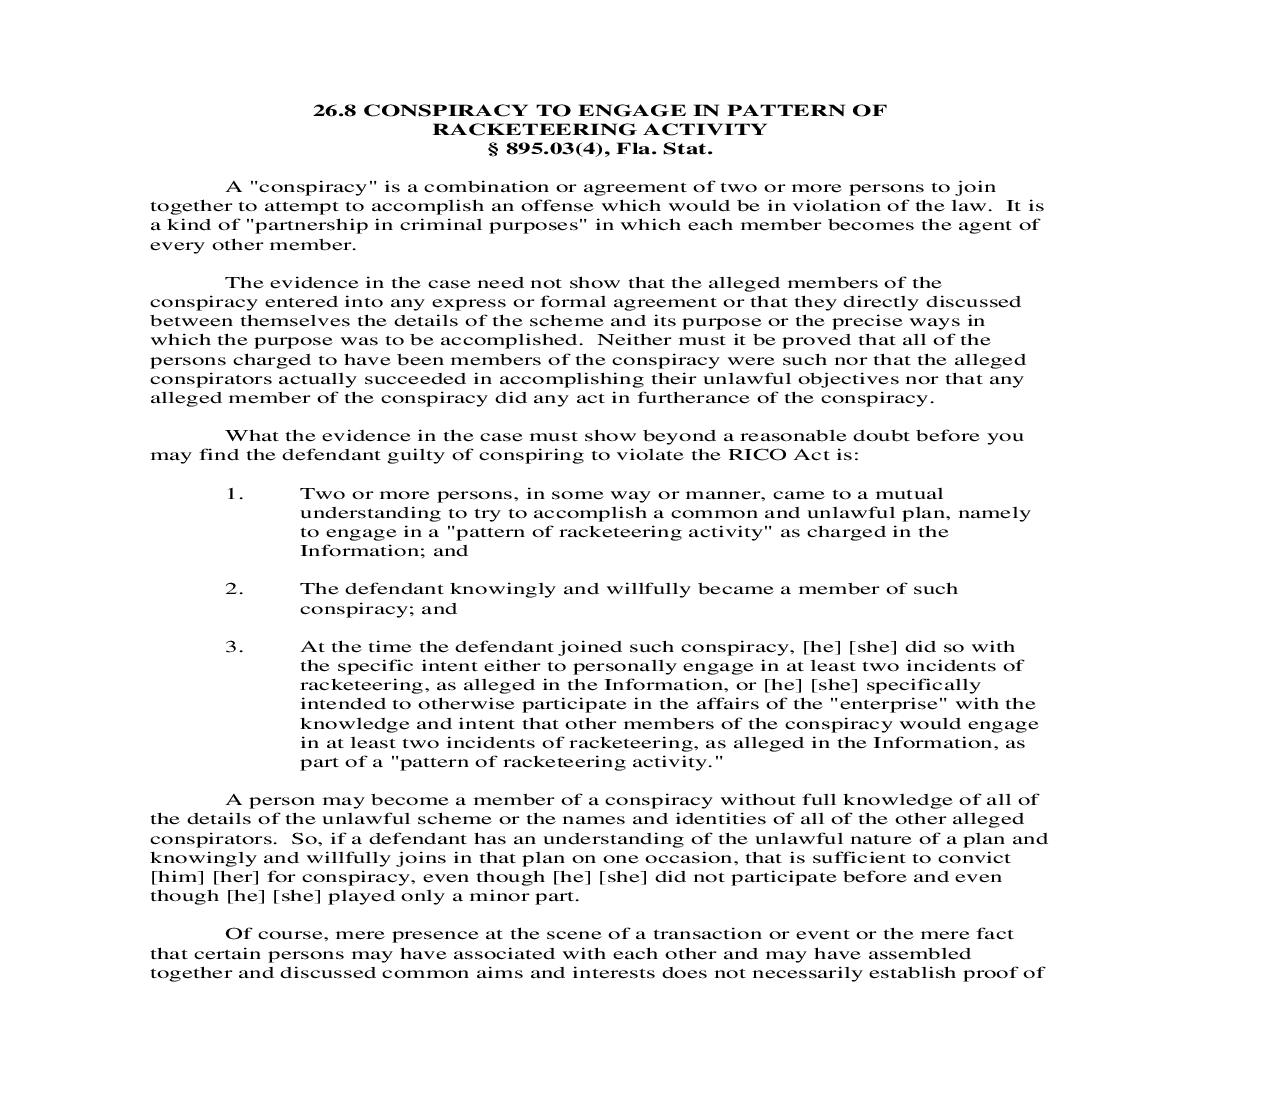 26.8. Conspiracy To Engage In Pattern Of Racketeering Activity | Pdf Doc Docx | Florida_JI